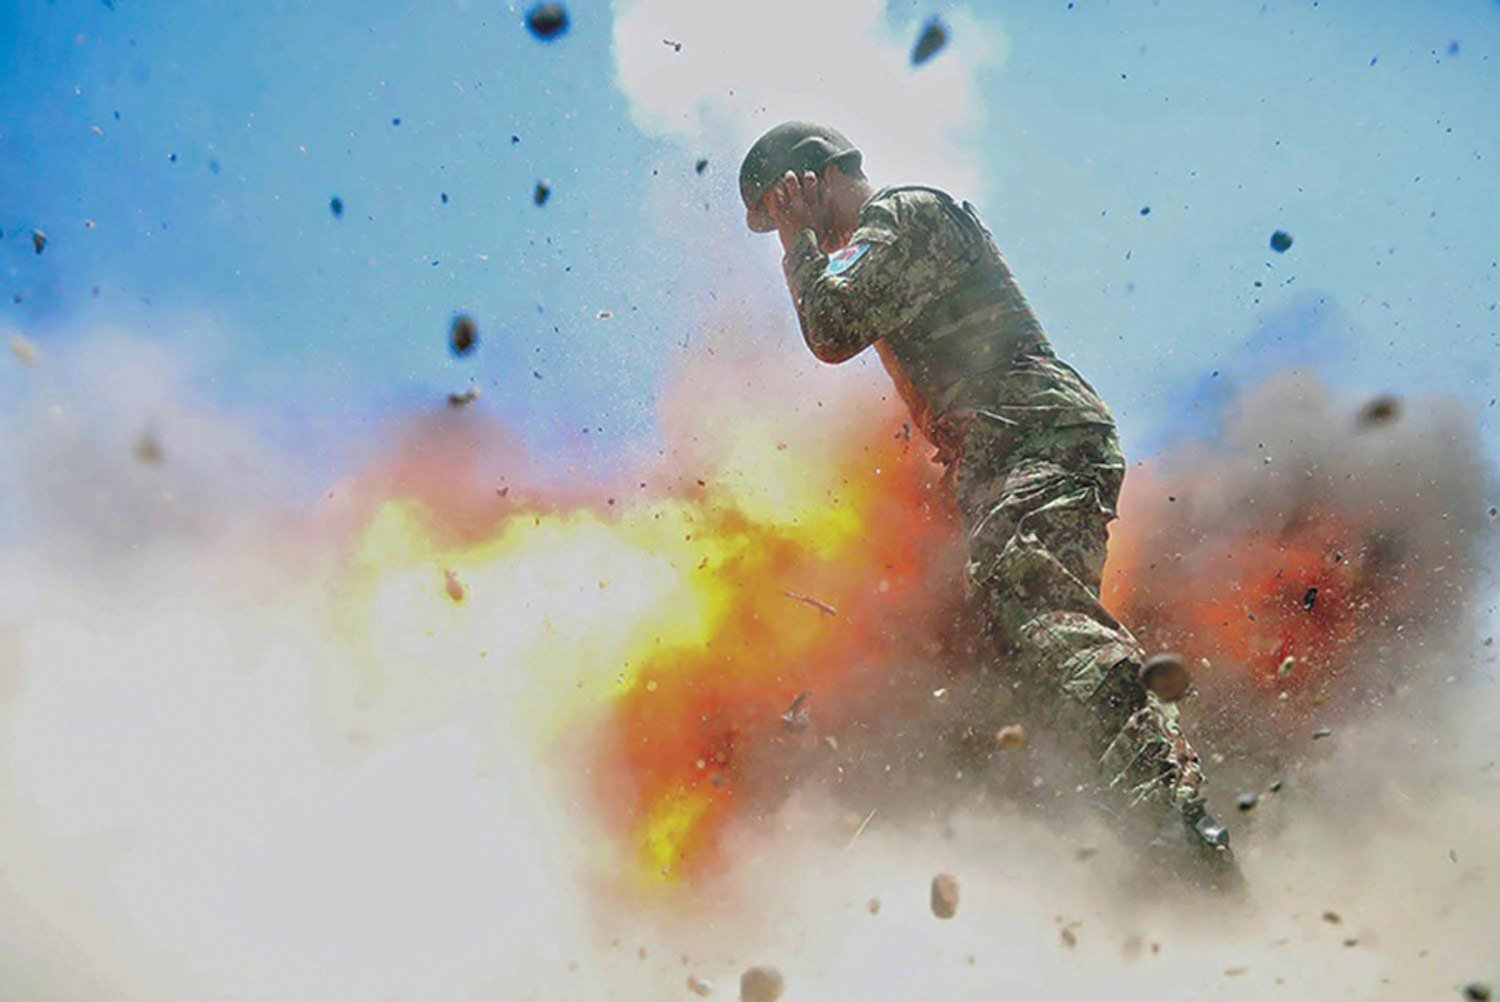 A mortar tube accidentally explodes during an Afghan National Army live-fire training exercise in Laghman Province, Afghanistan, on July 2, 2013.